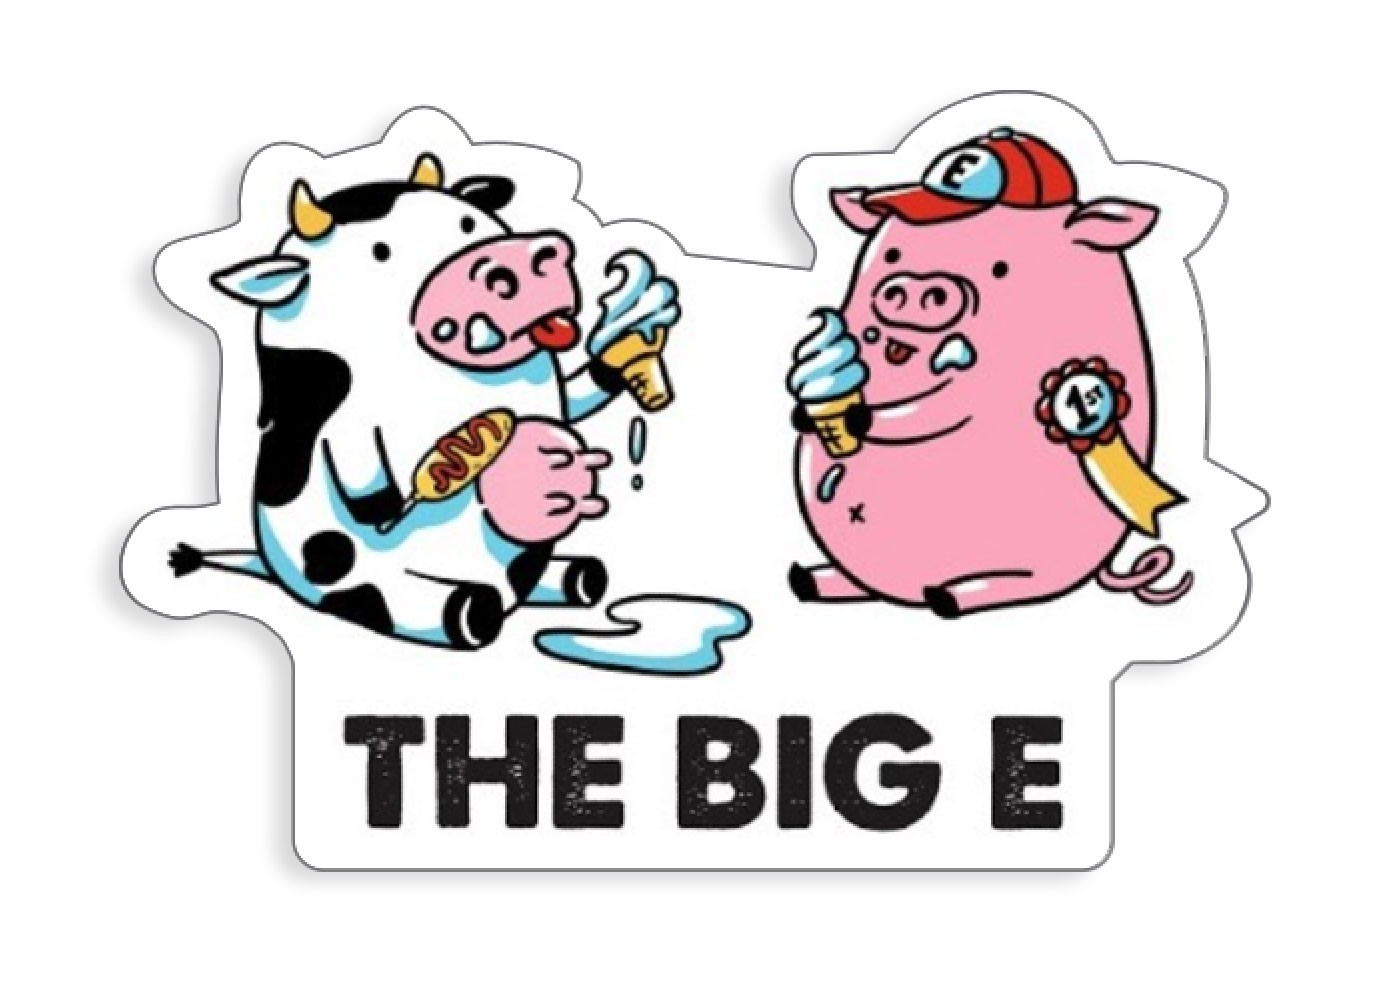 Cow & Pig 2020 Decals (Set of 2)